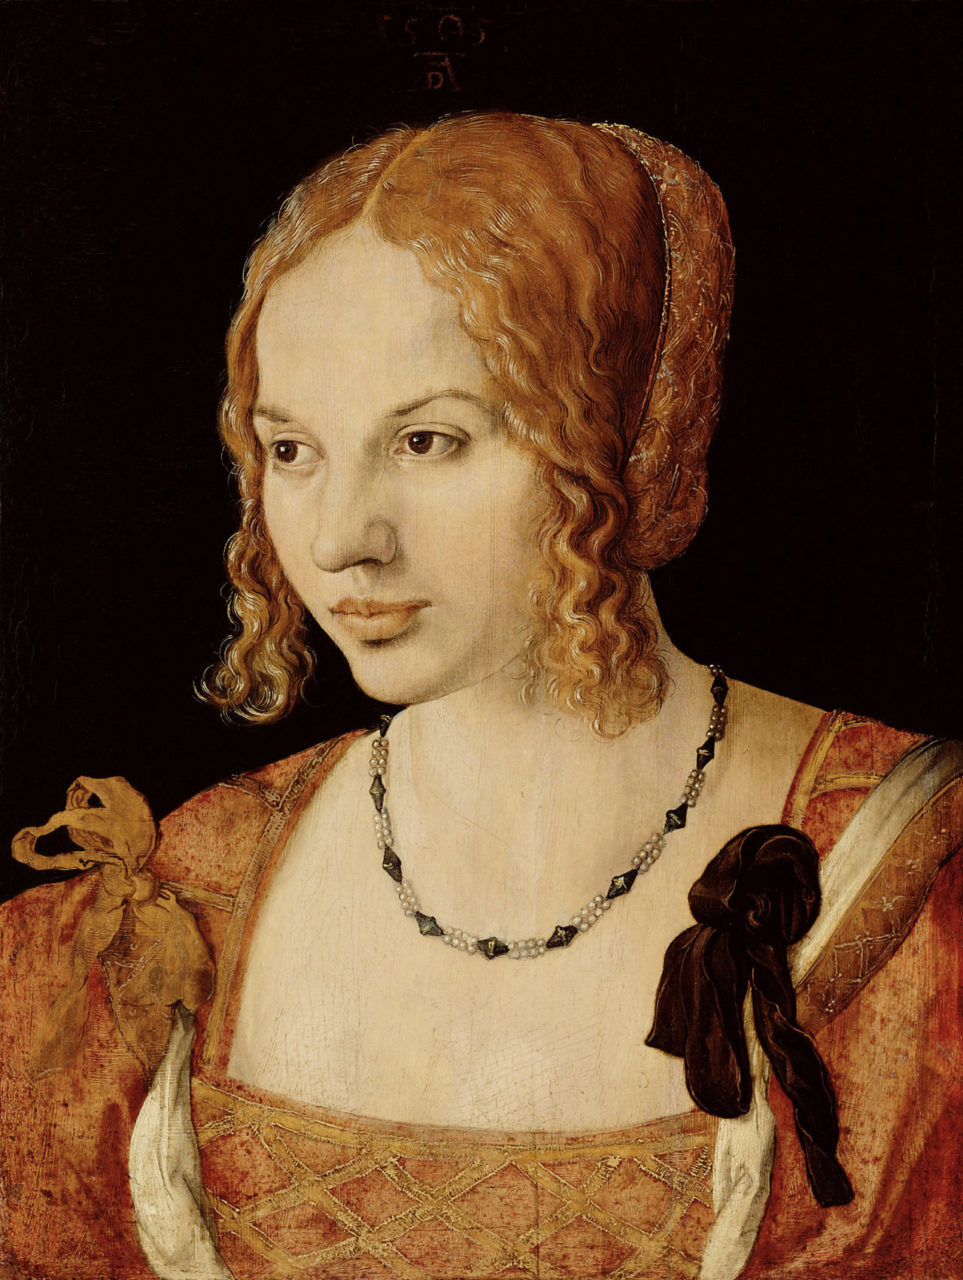 Half-length portrait of a young Venetian woman